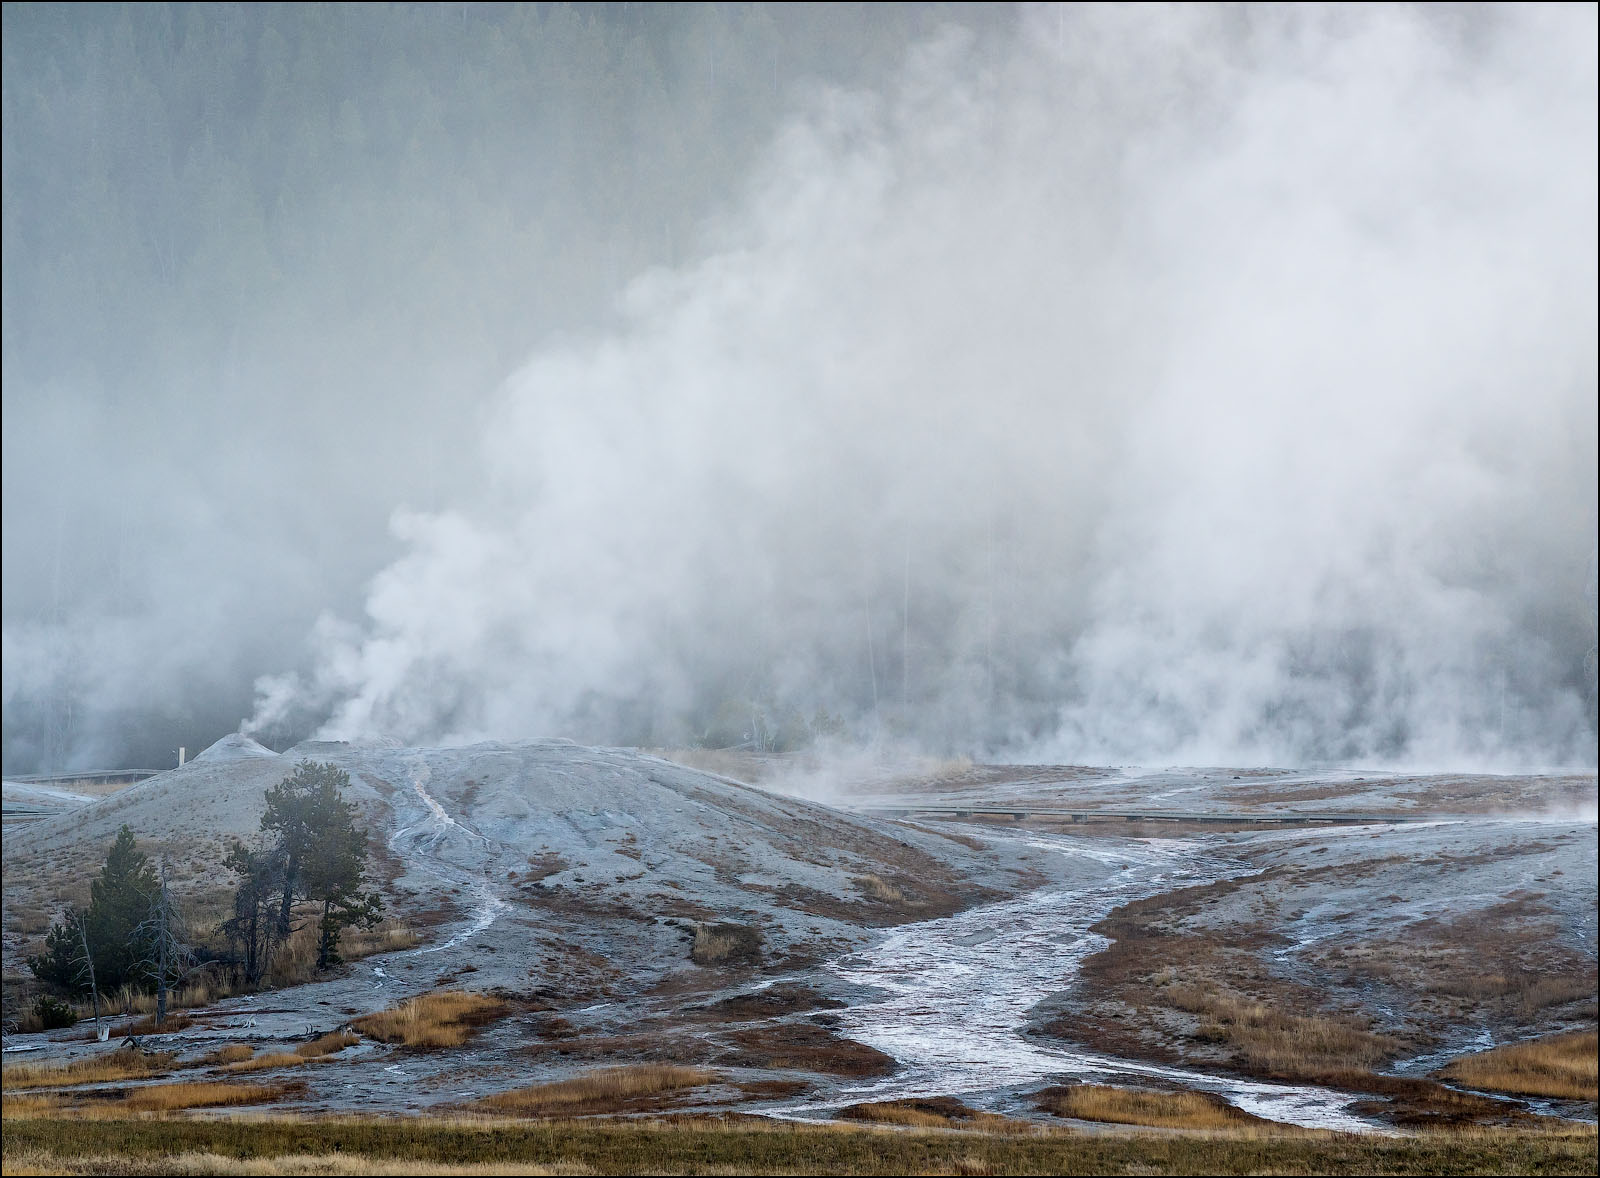 Upper Geyser Basin, Yellowstone National Park, Wyoming.